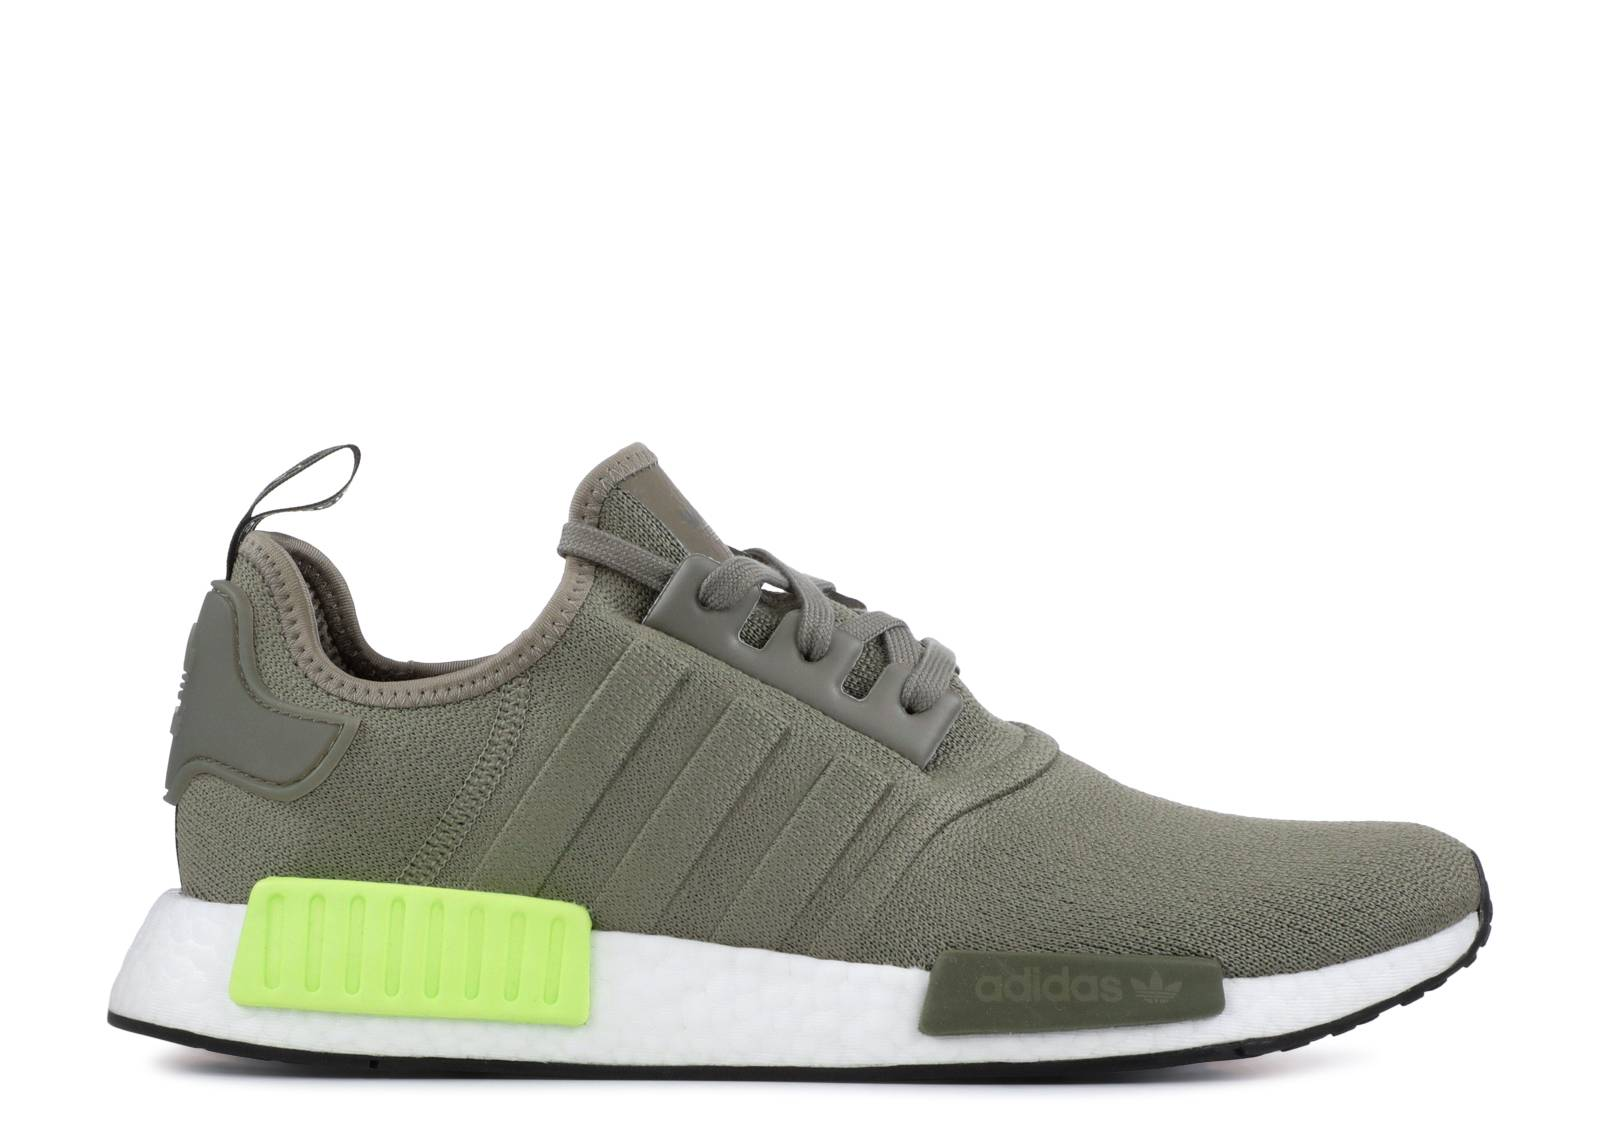 low priced dff63 267dc Adidas NMD - adidas Originals Men's & Women's Shoes | Flight ...